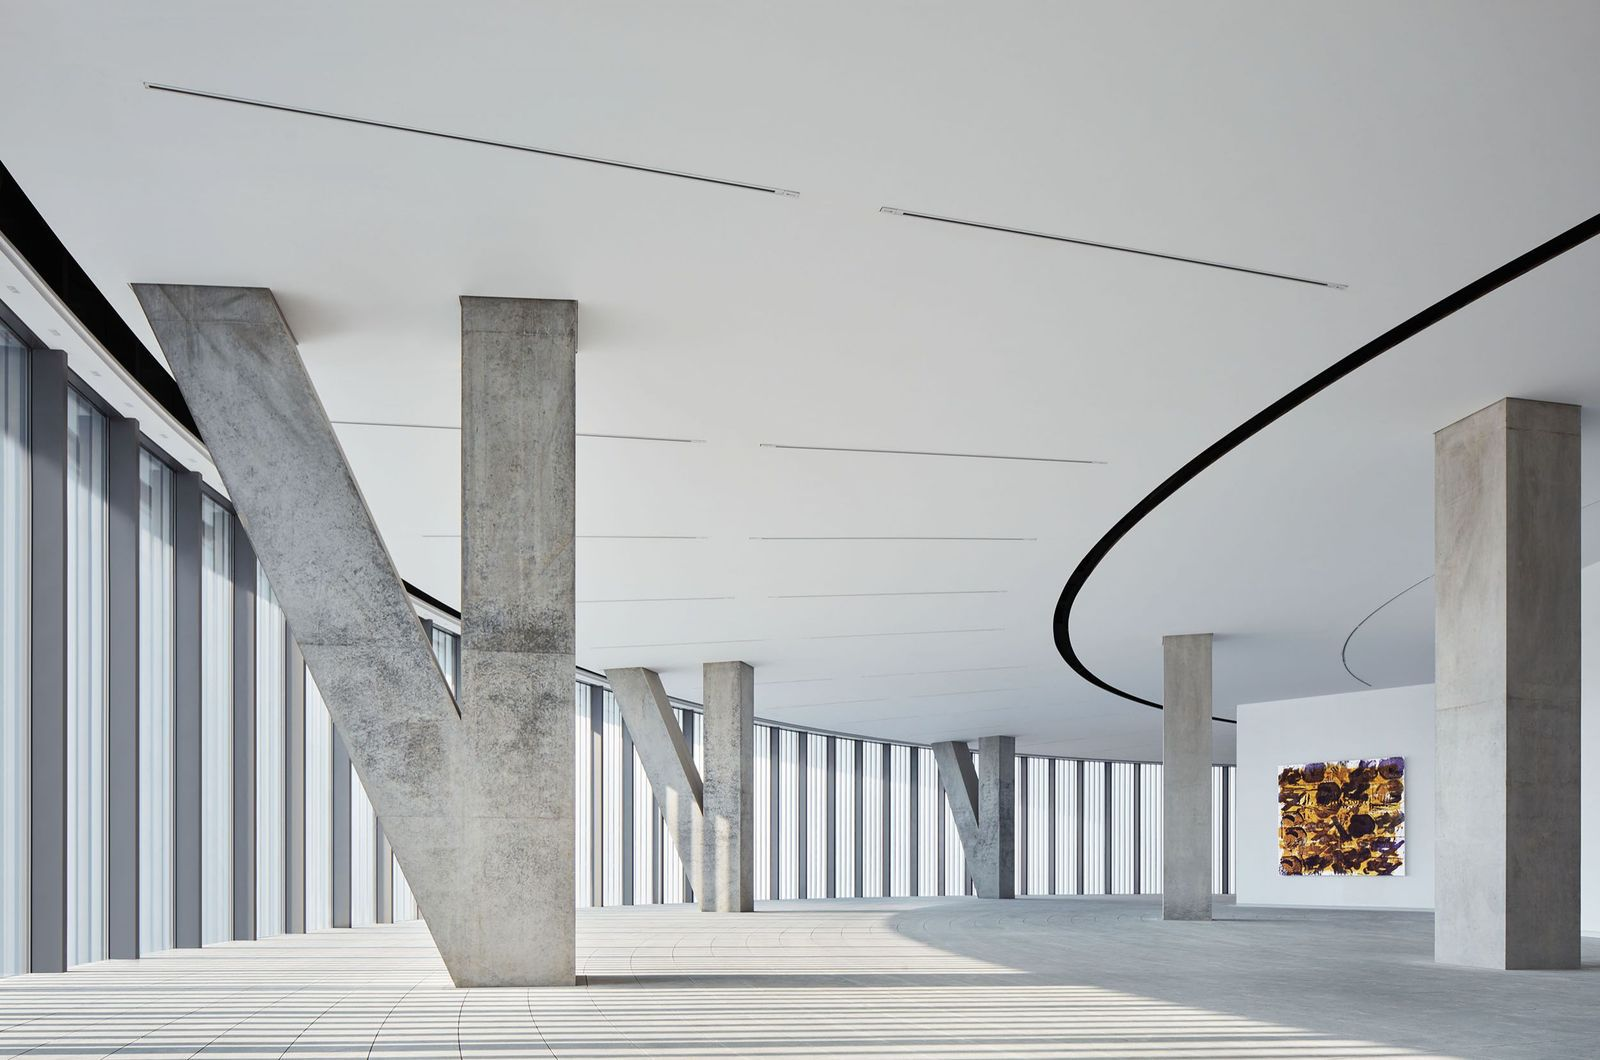 Architectural Design Of The Year: He Art Museum by Tadao Ando Architect & Associates